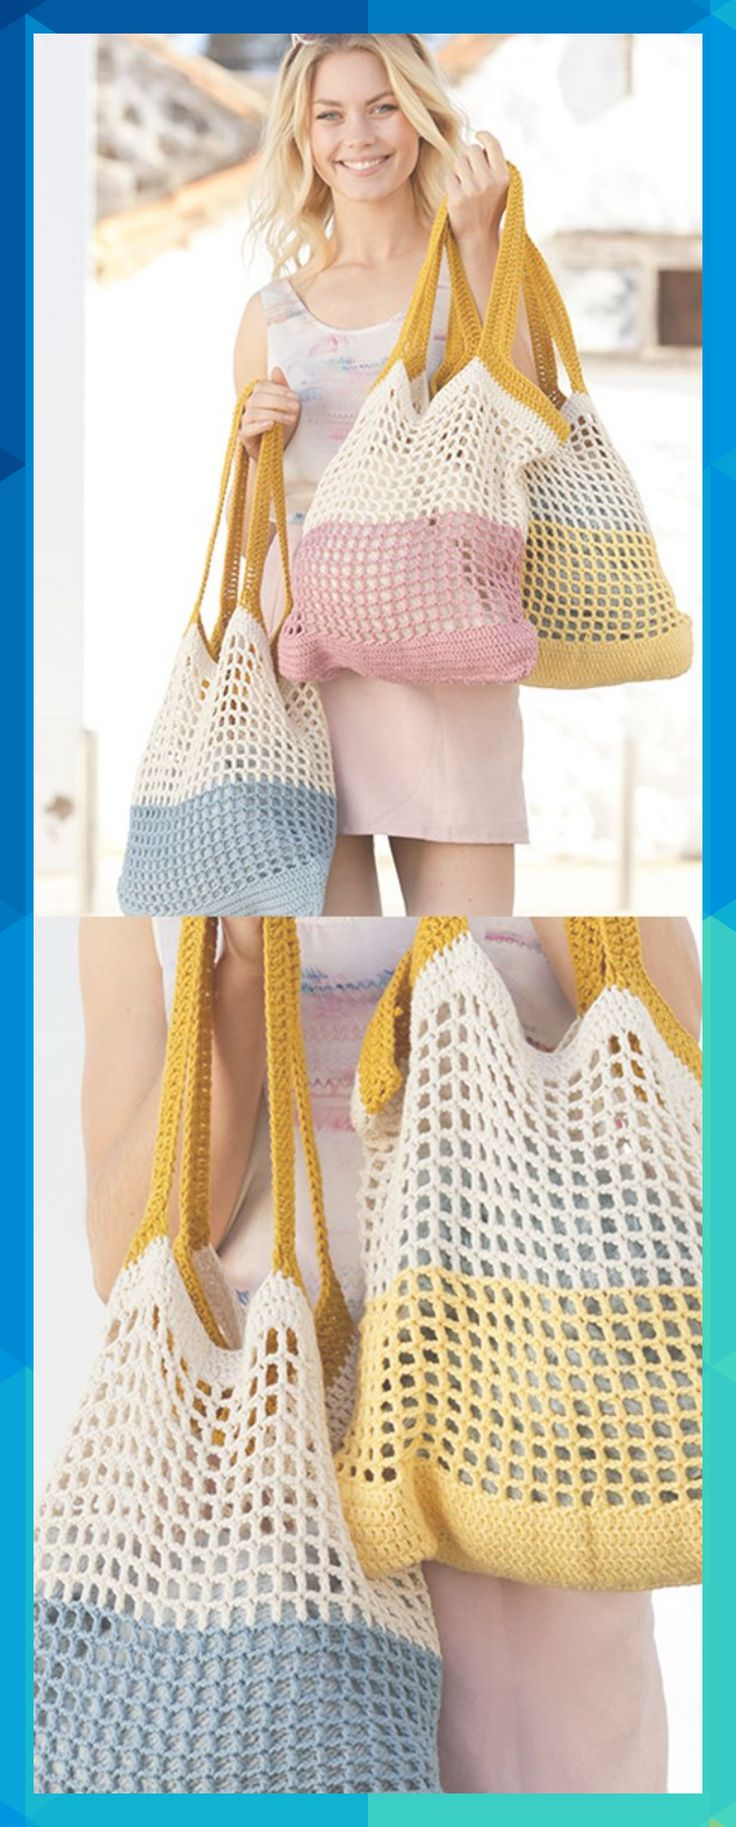 Free Crochet Pattern for a Beach Bag ⋆ Crochet Kingdom #lonny13234